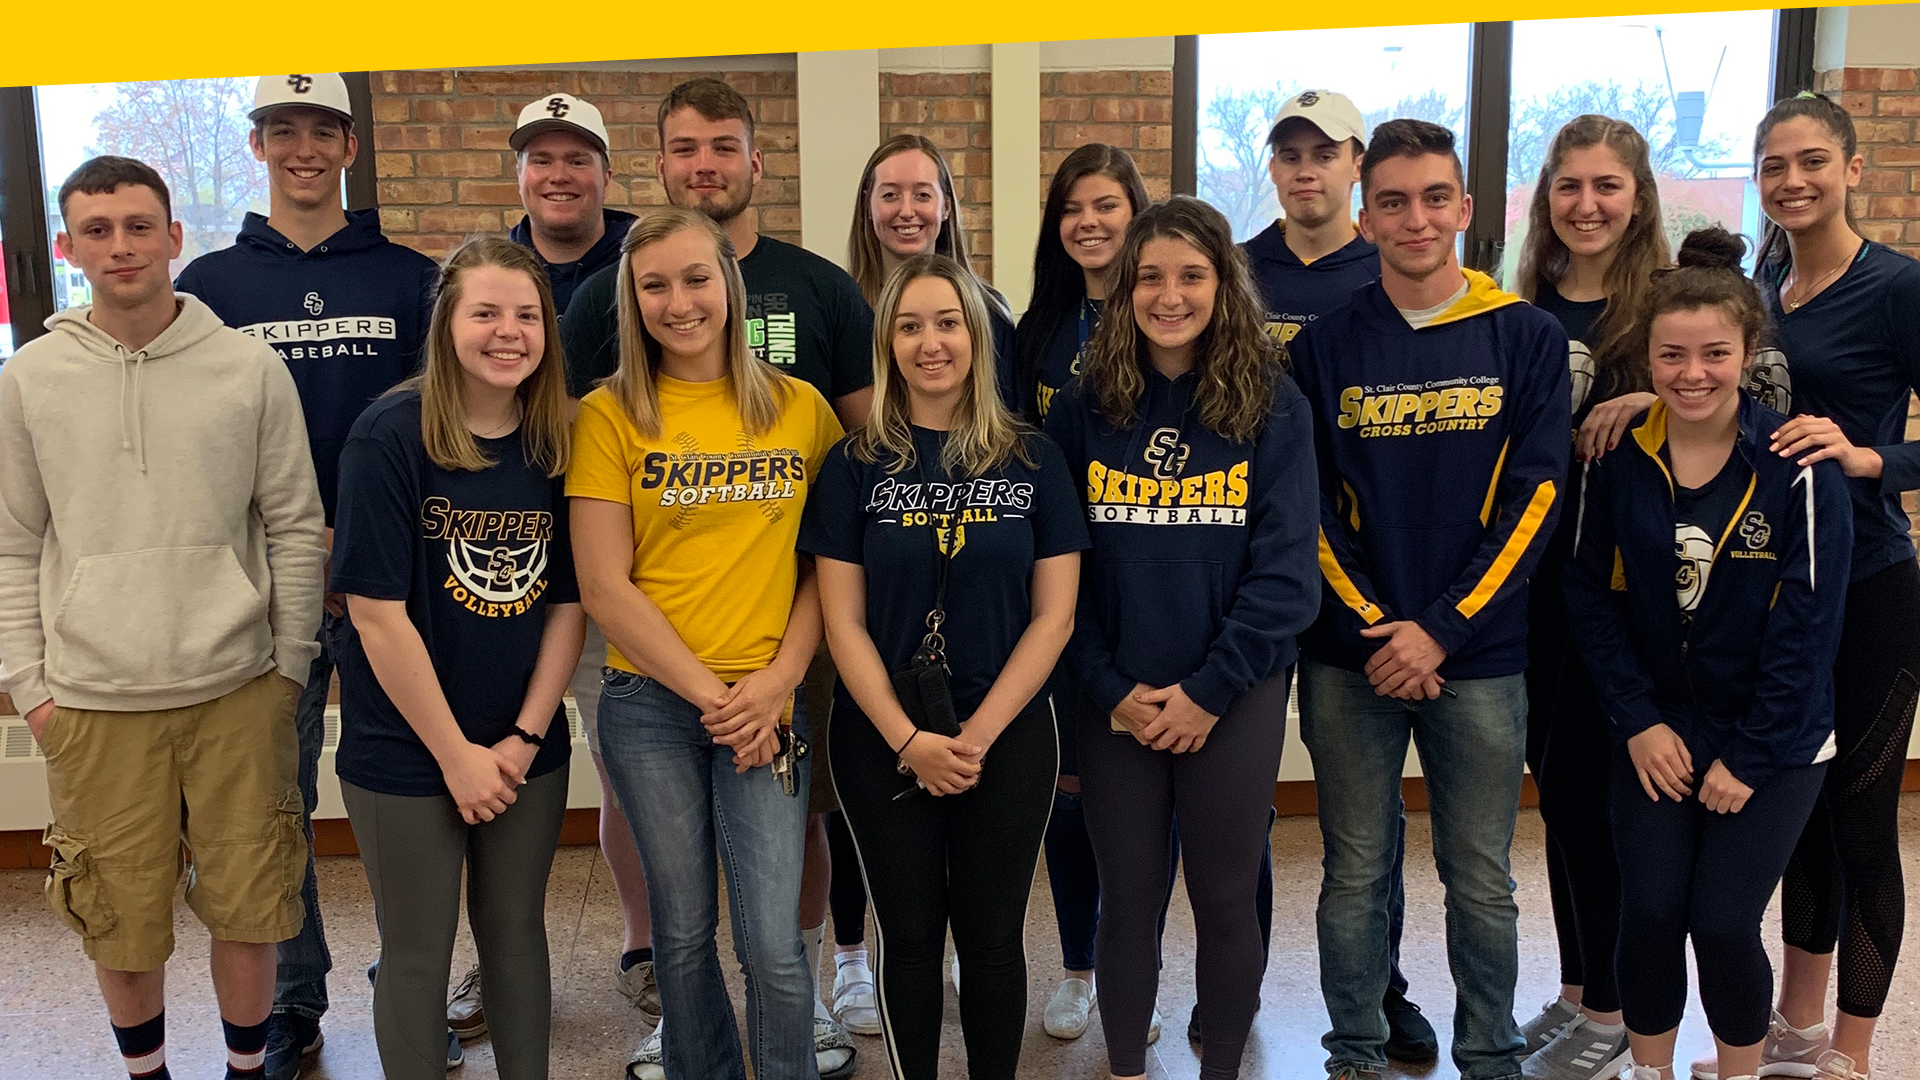 A group of Skippers athletes pose for photo in the Student Center.